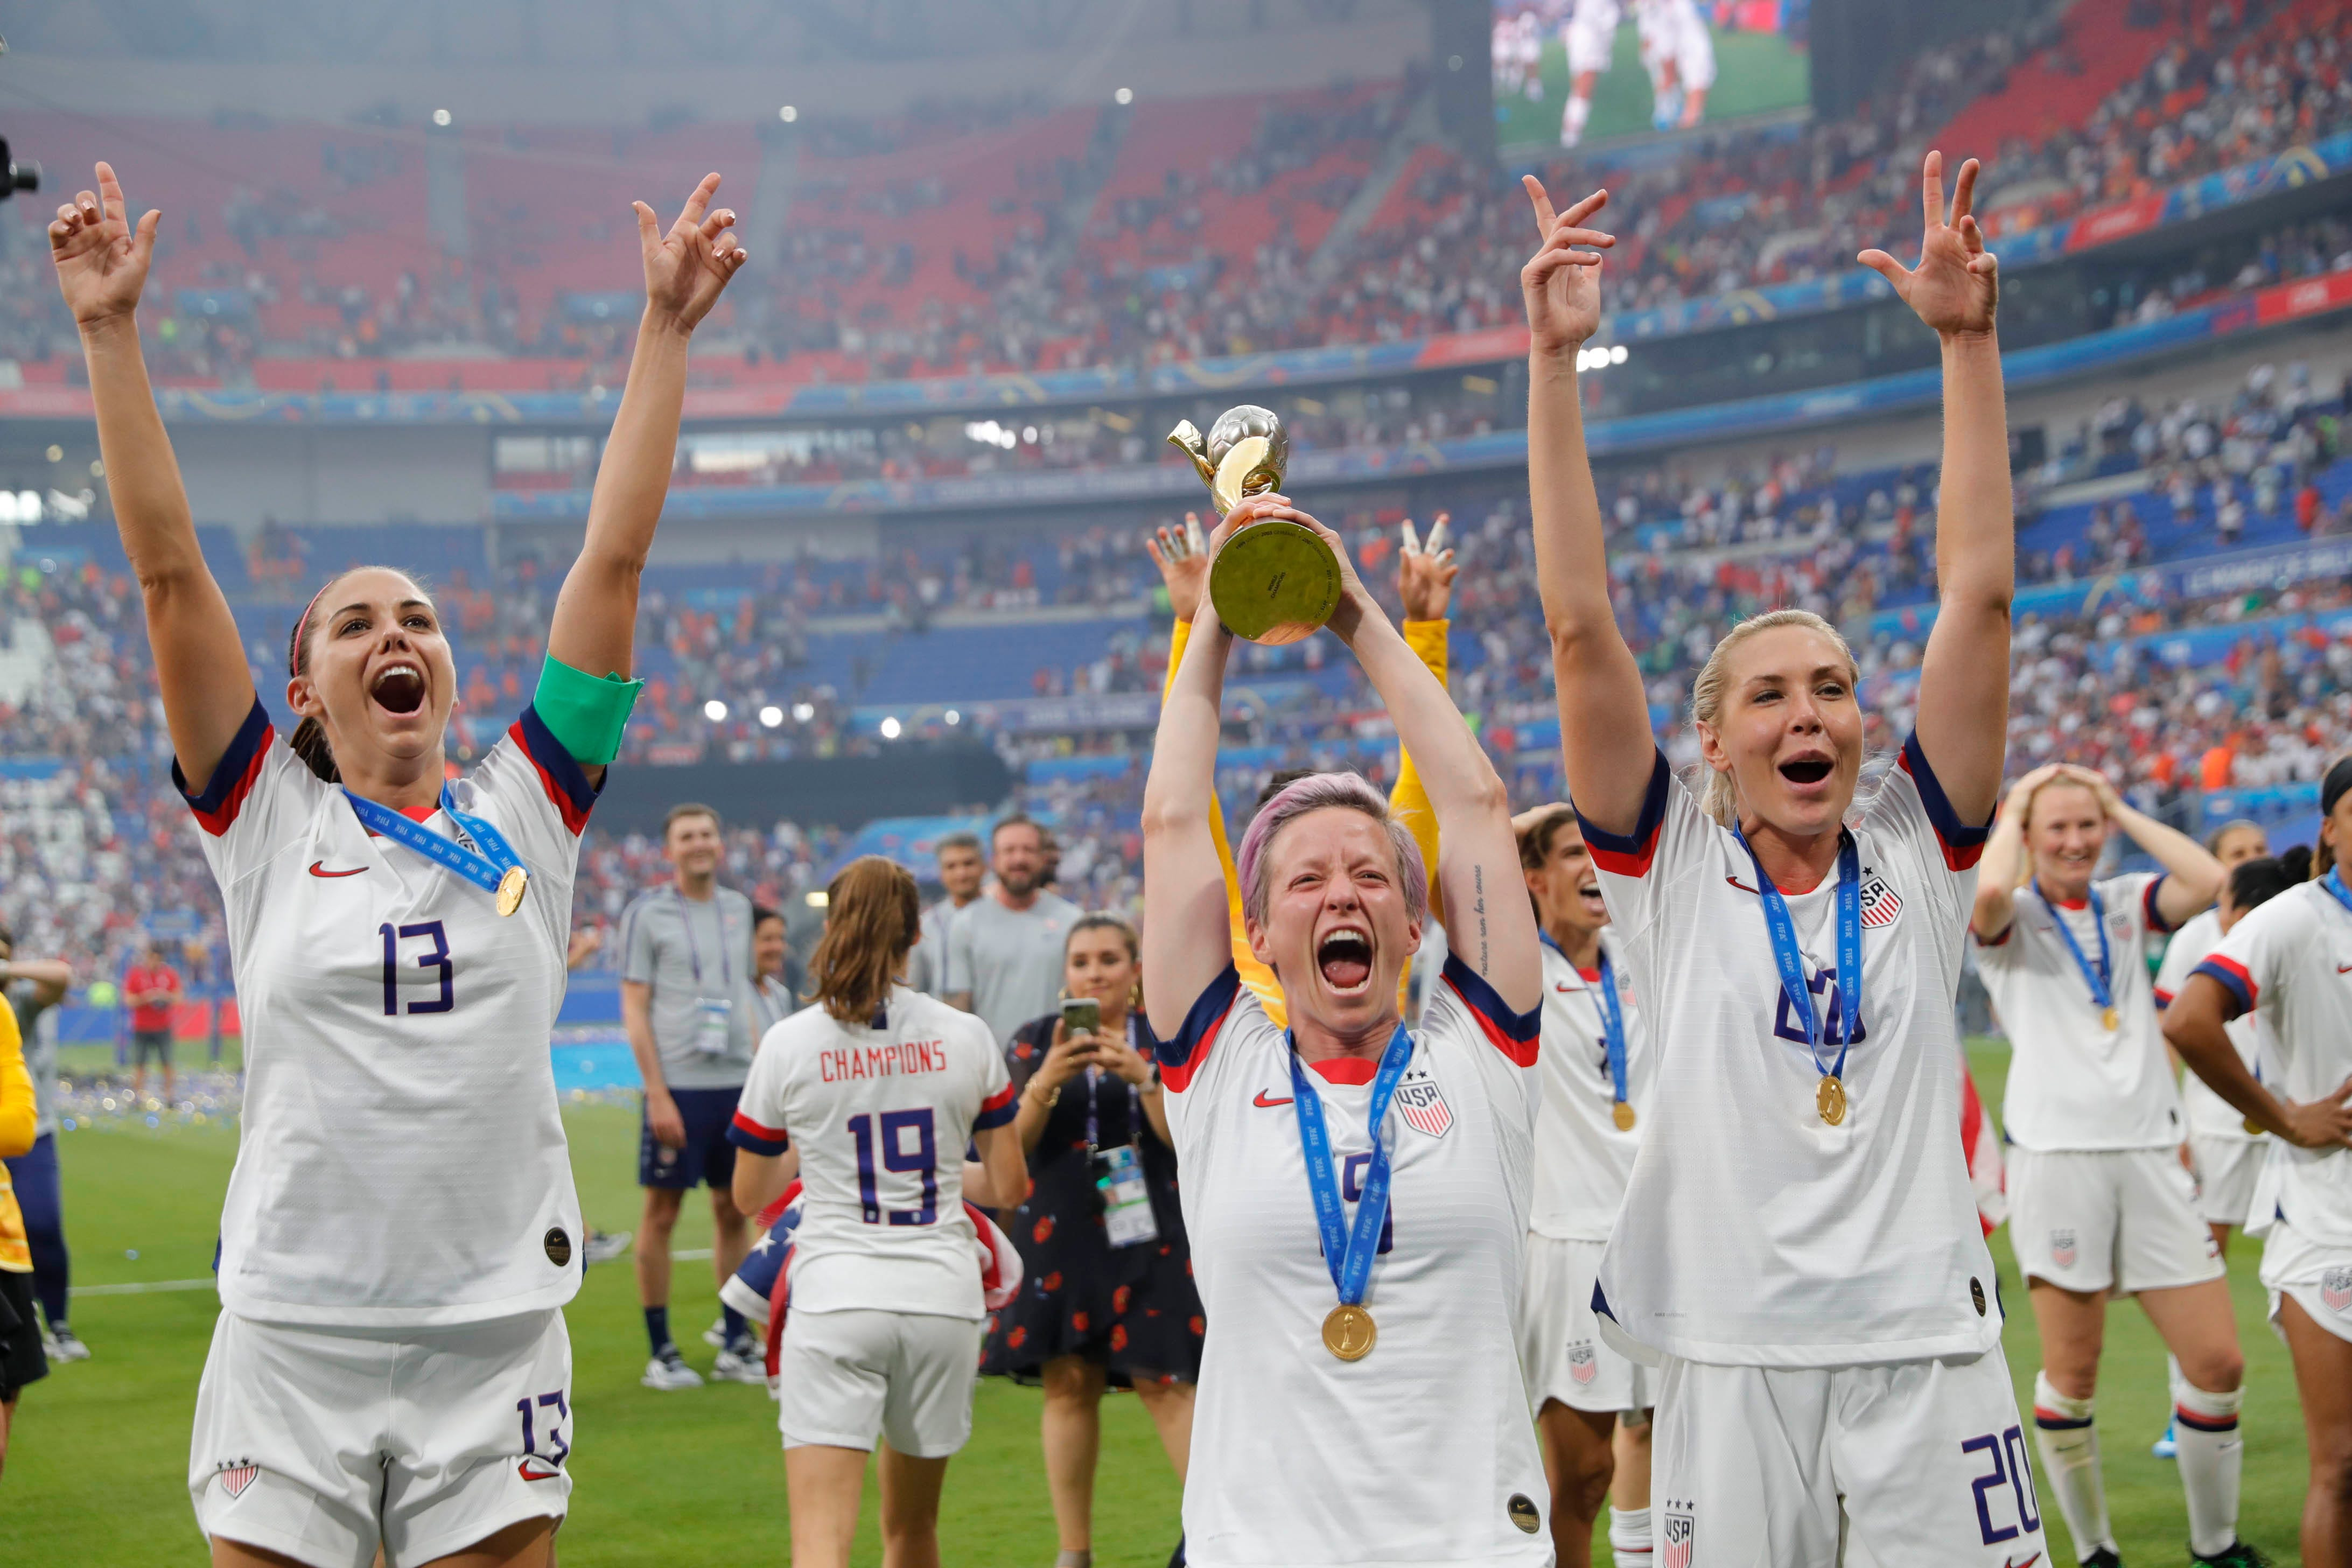 Best of the decade: US women end 2010s where they started it, as world's best